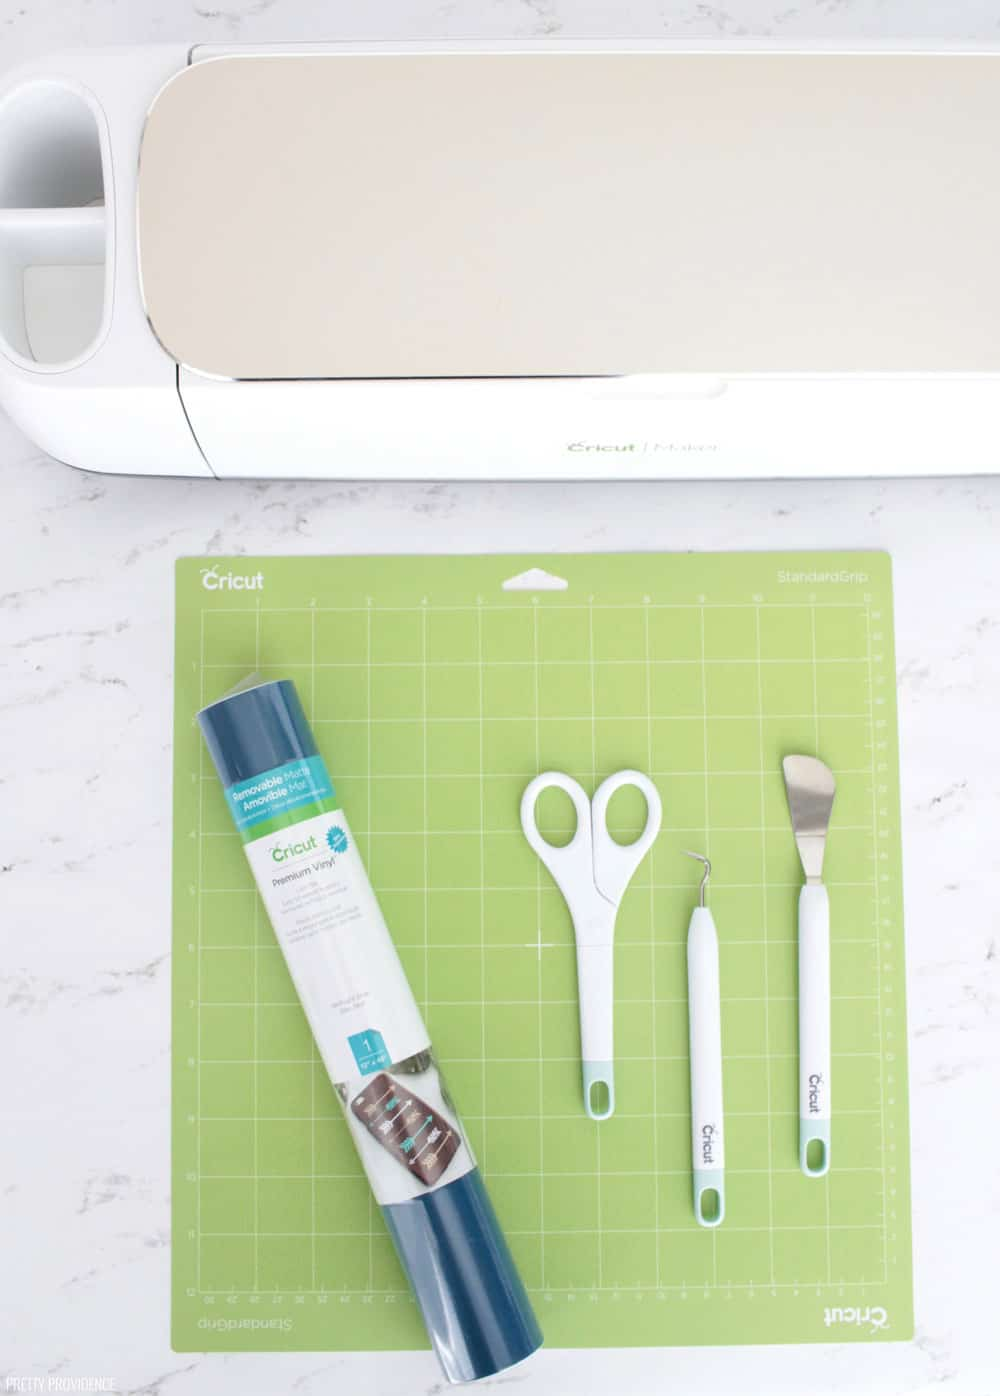 Cricut Maker and Materials